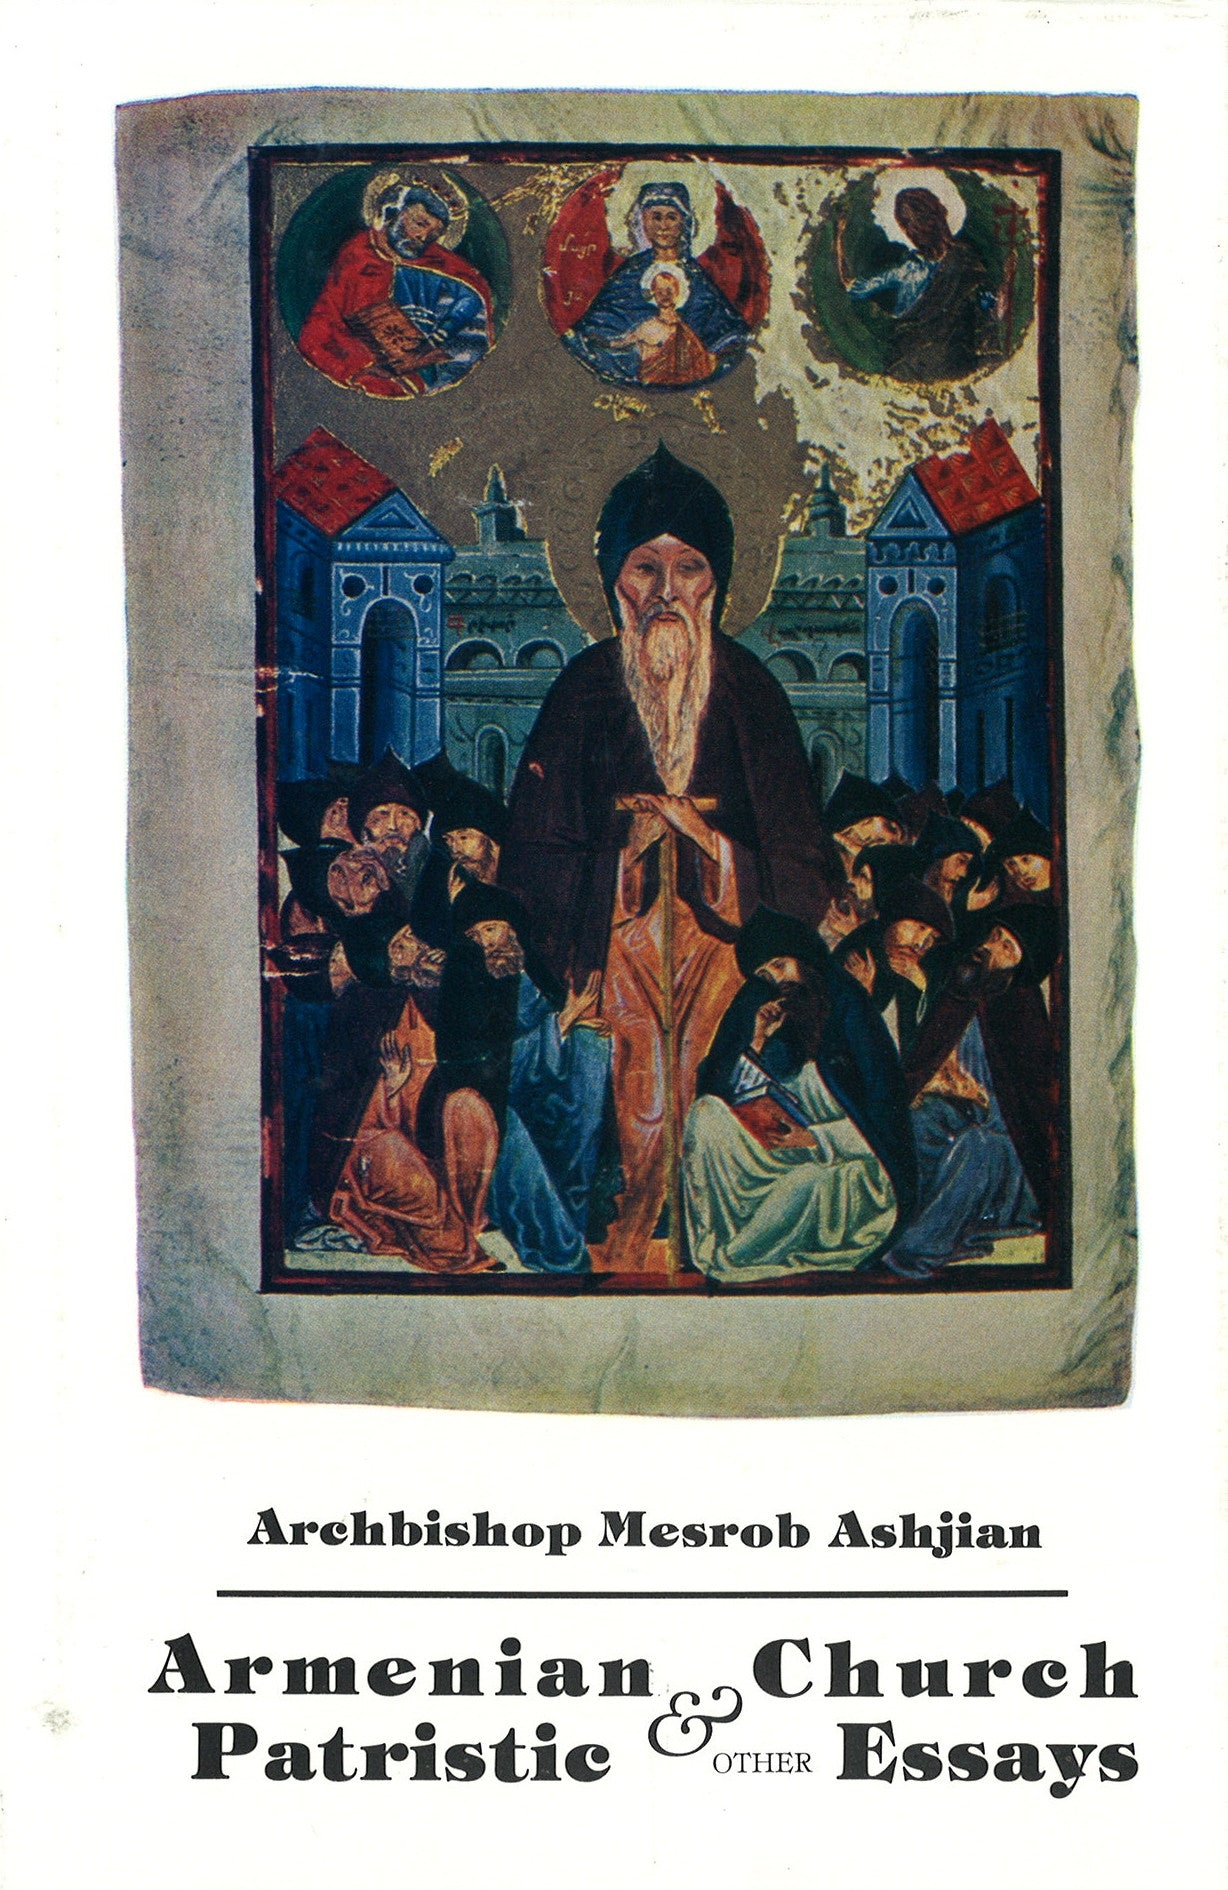 ARMENIAN CHURCH PATRISTIC AND OTHER ESSAYS